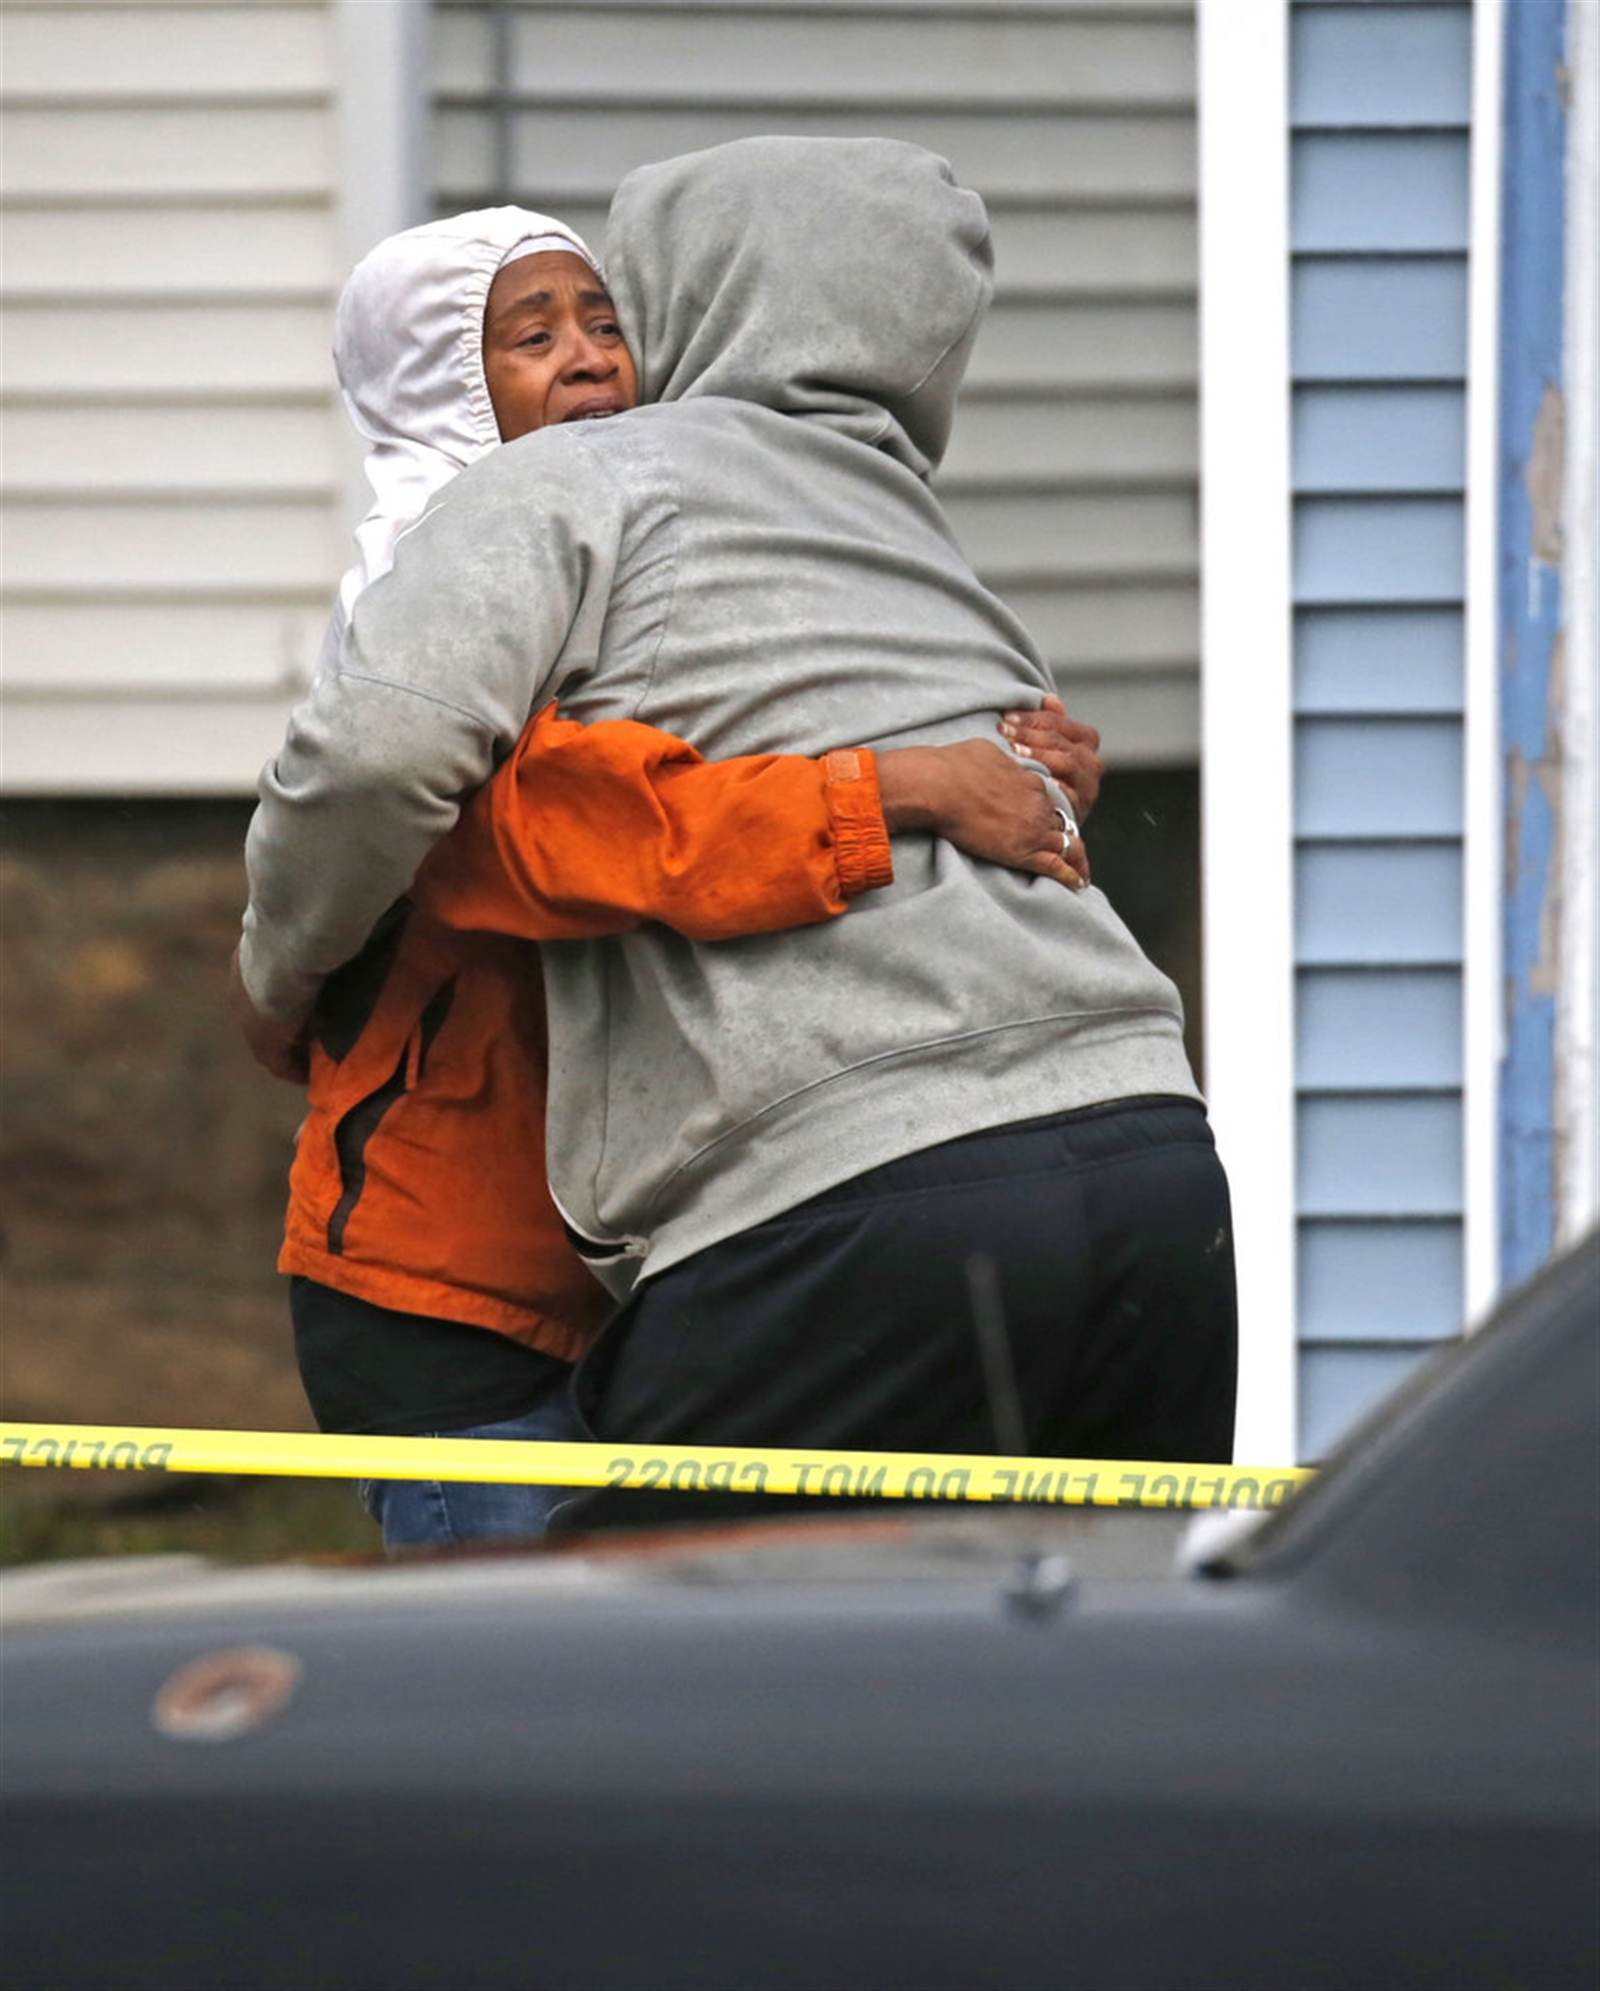 Friends and family members console each other after learning the identification of a deceased shooting victim lying covered on the ground behind the Happy Time Way corner store on   Kensington Avenue in Buffalo.